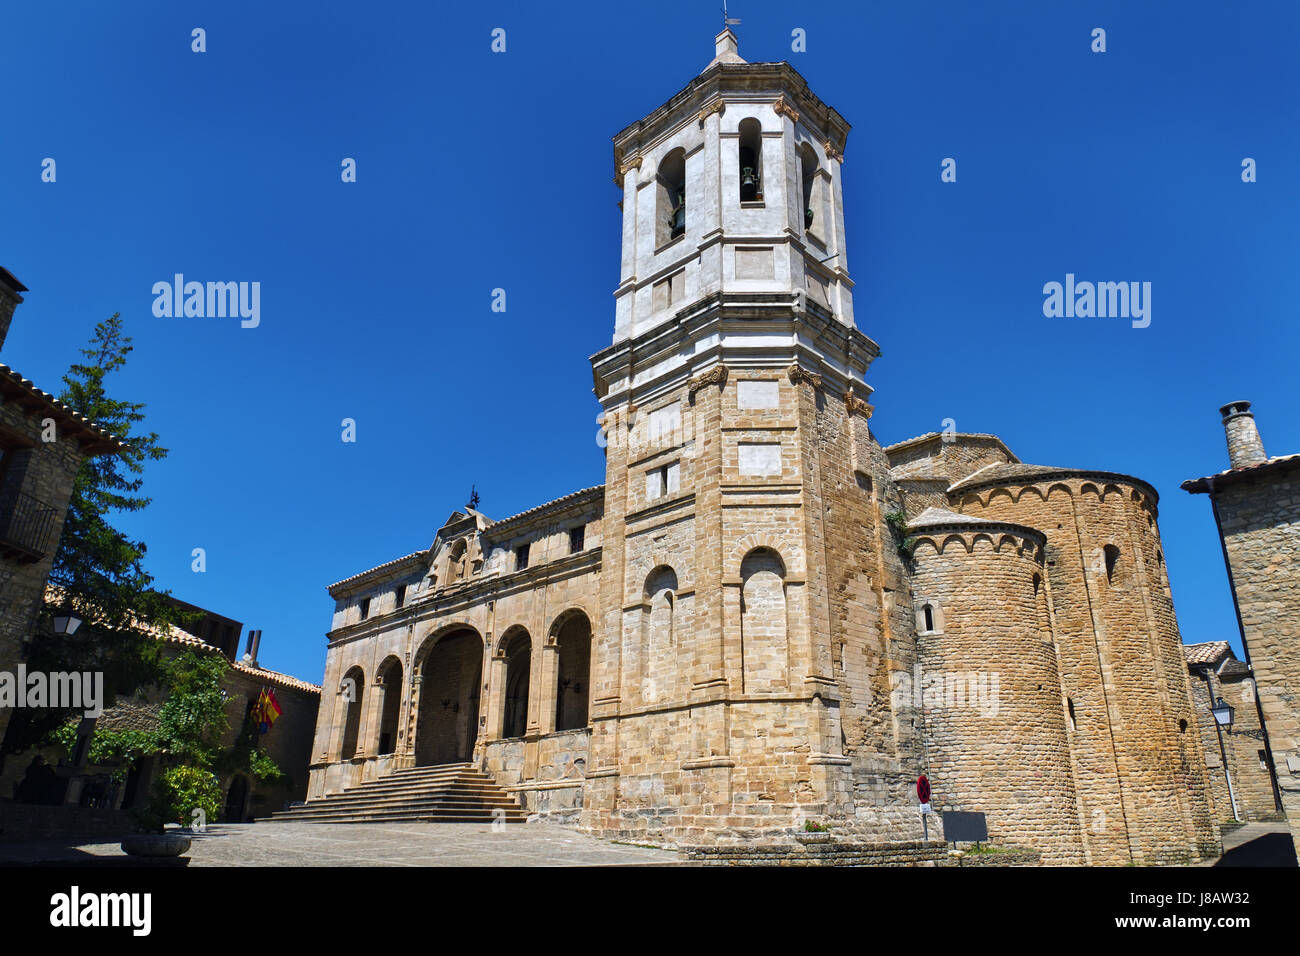 religion, church, monument, cathedral, europe, spain, style of construction, - Stock Image